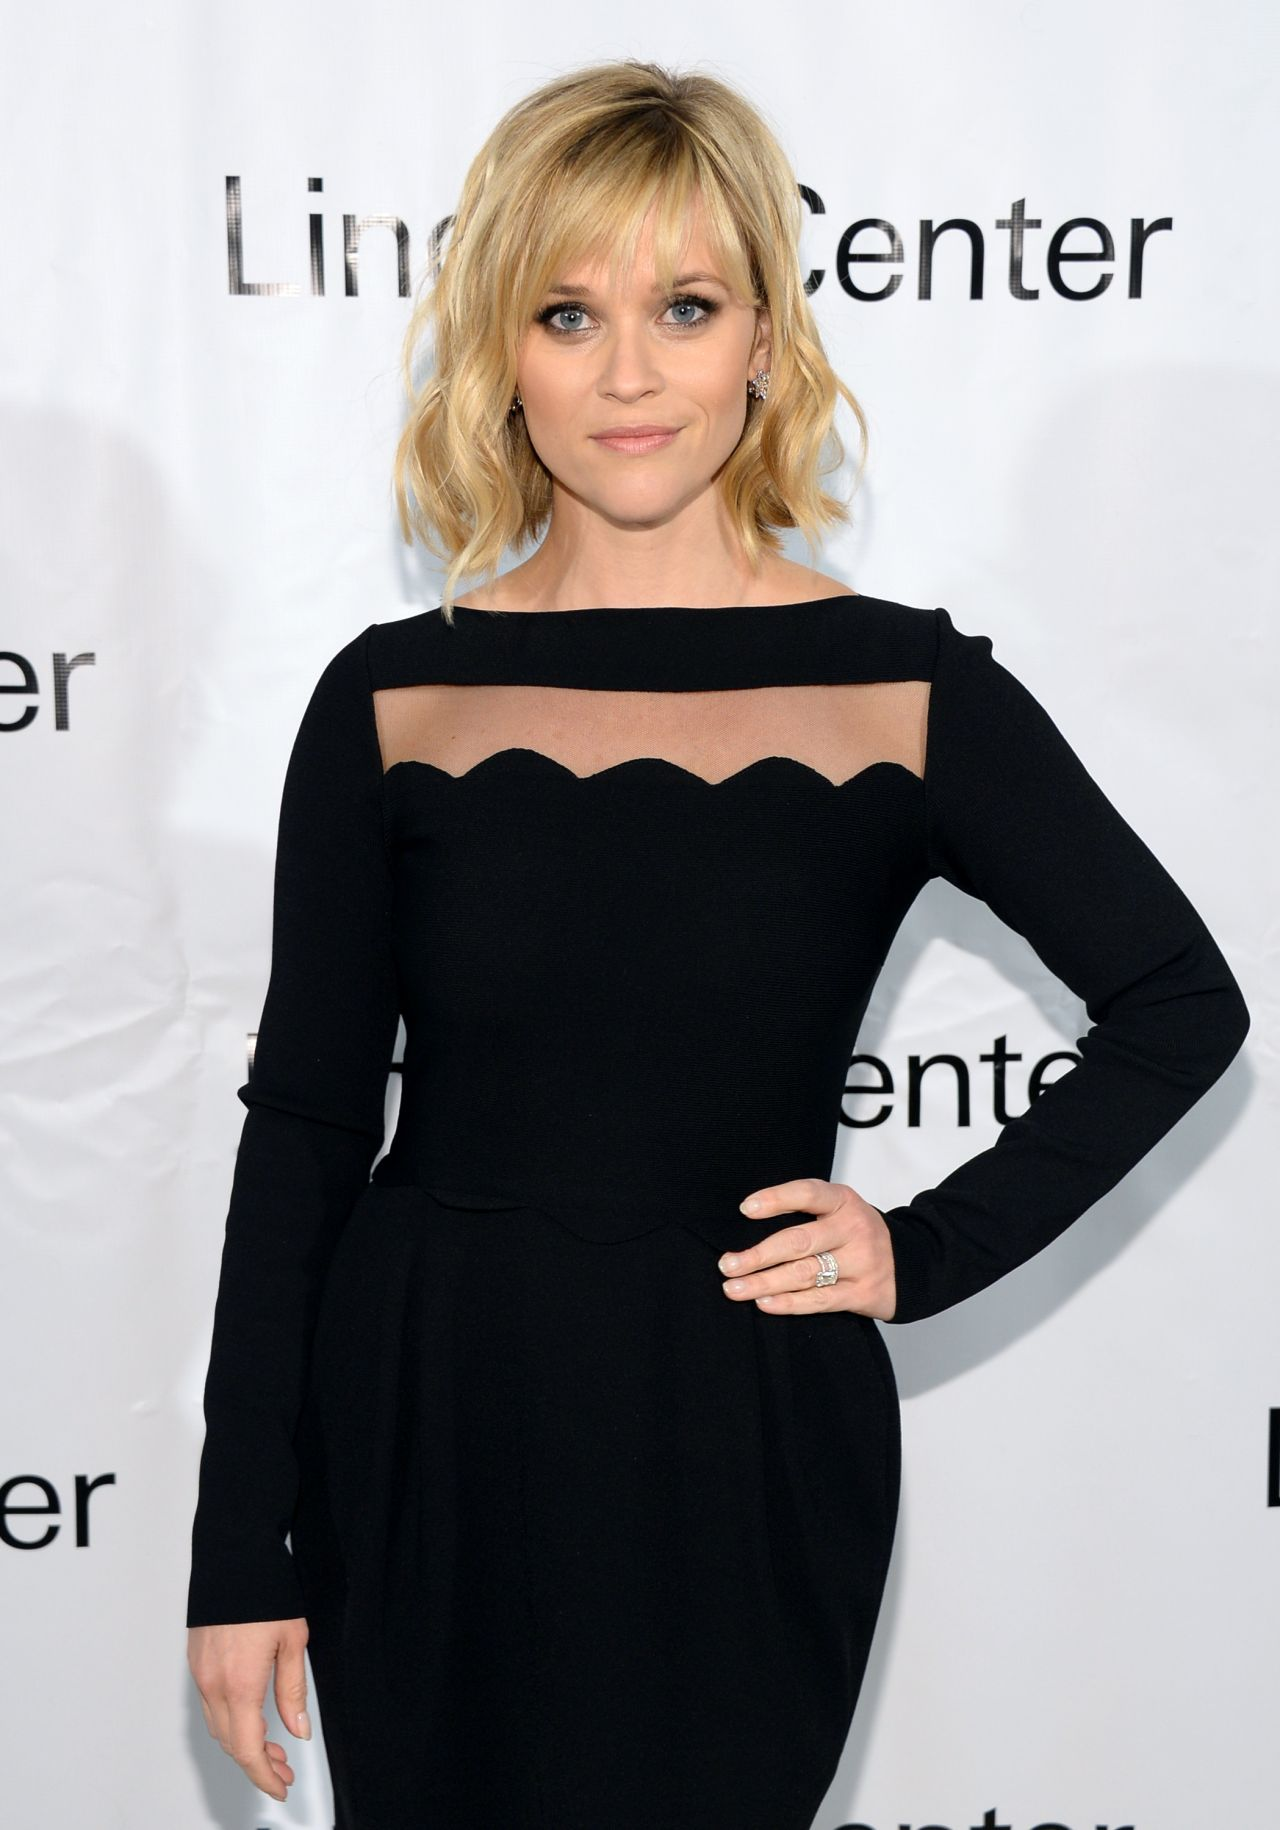 Reese Witherspoon - The Great American Songbook Event in New York, February 2014